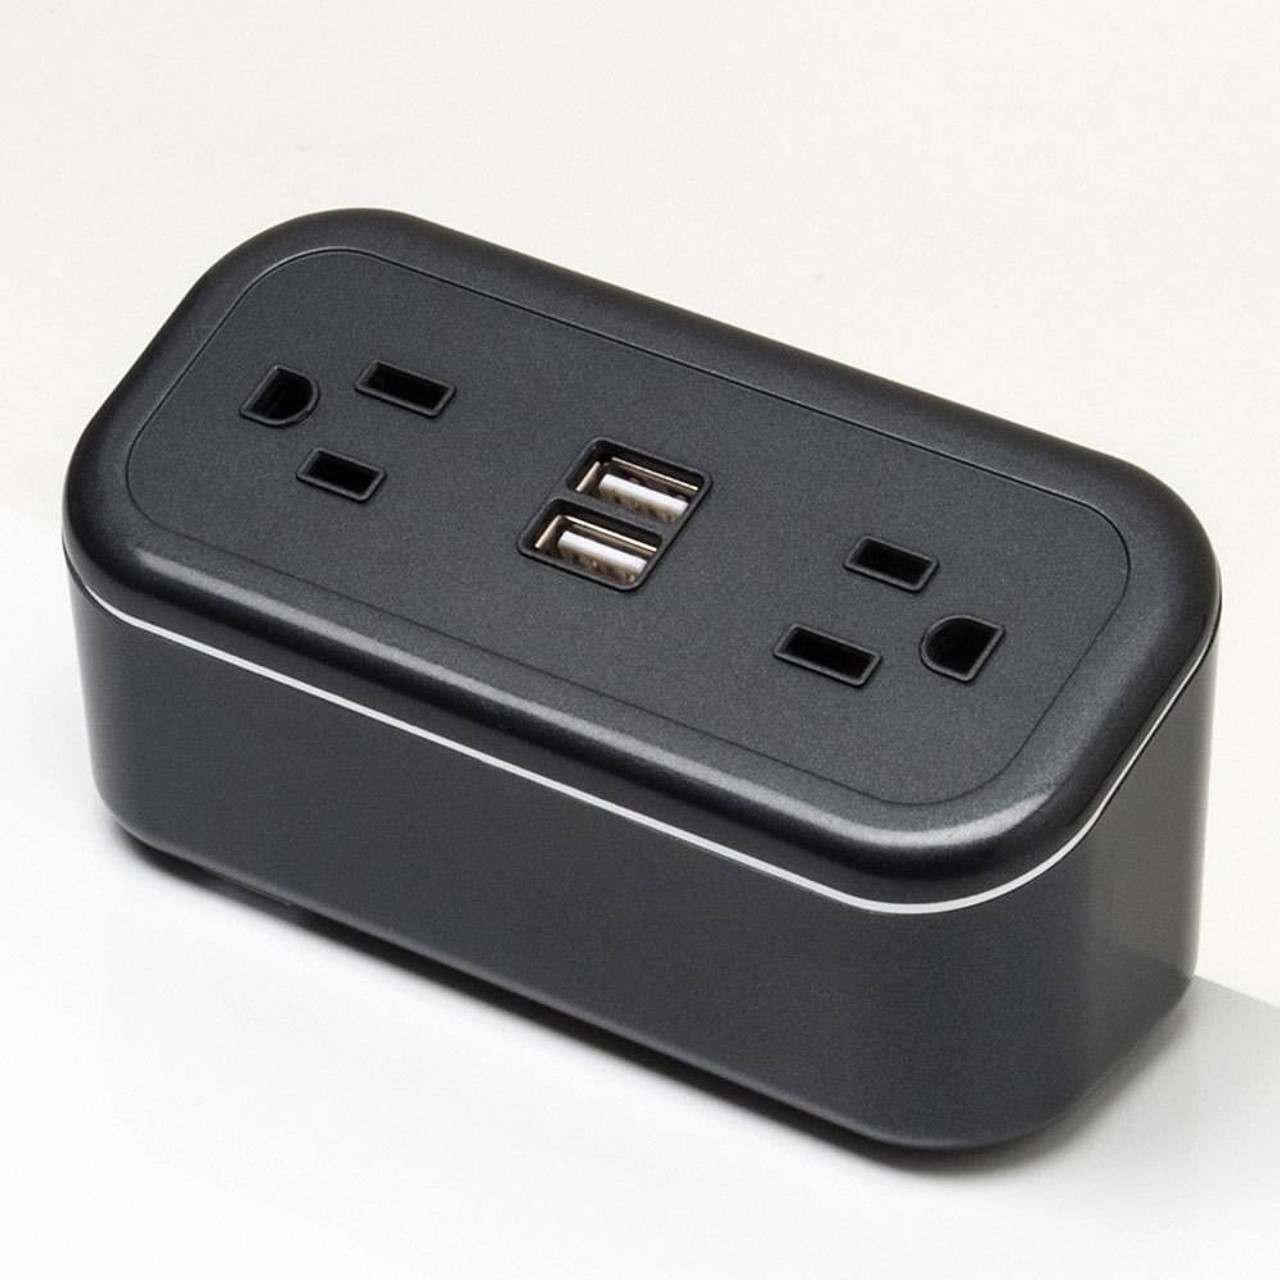 Brandstand BRANDSTAND CUBIEMINI 2 POWER OUTLETS 2 USB CHARGING PORTS